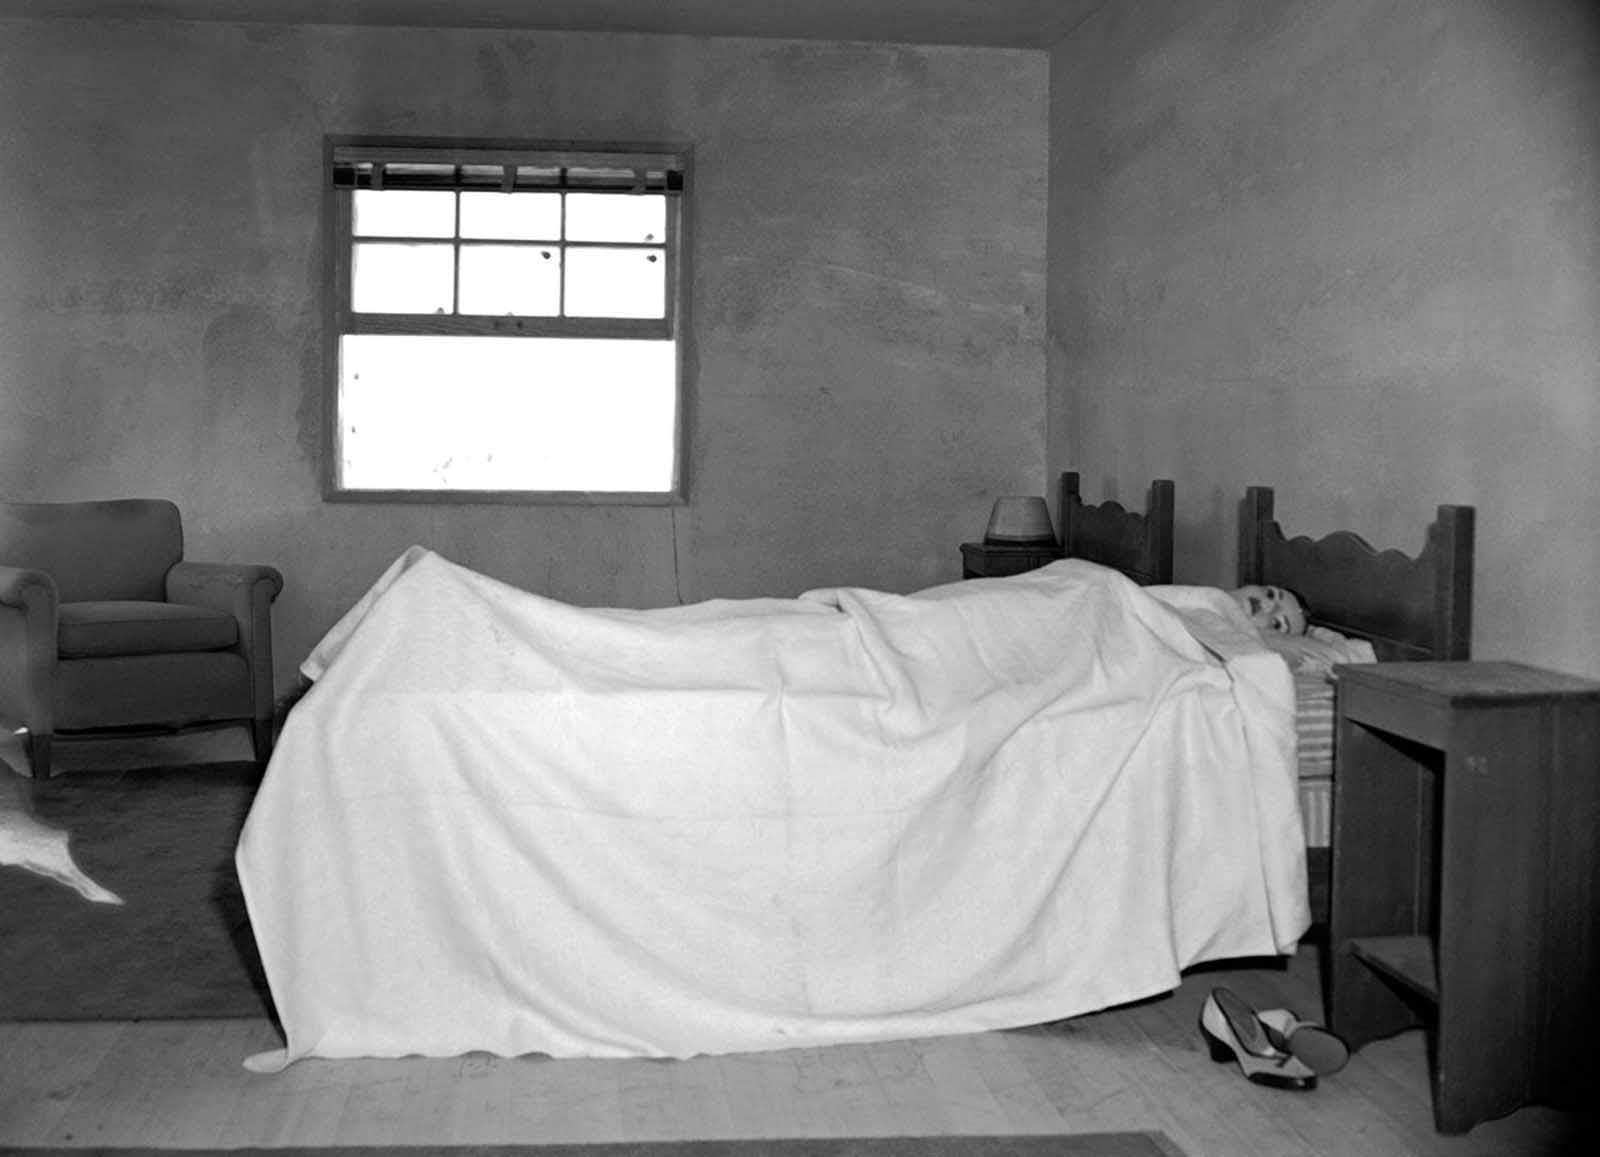 (1 of 2) Stretched on a bed, in an upstairs bedroom of House No. 2, is a mannequin ready to test the effects of an atomic explosion at the atomic proving grounds near Las Vegas, Nevada, March 15, 1953. Through the window a mile and a half away stands a 300-foot steel tower atop which the bomb will be detonated. The purpose of the test blast is to show Civil Defense officials what would happen in an American city if it were subjected to a atomic attack.